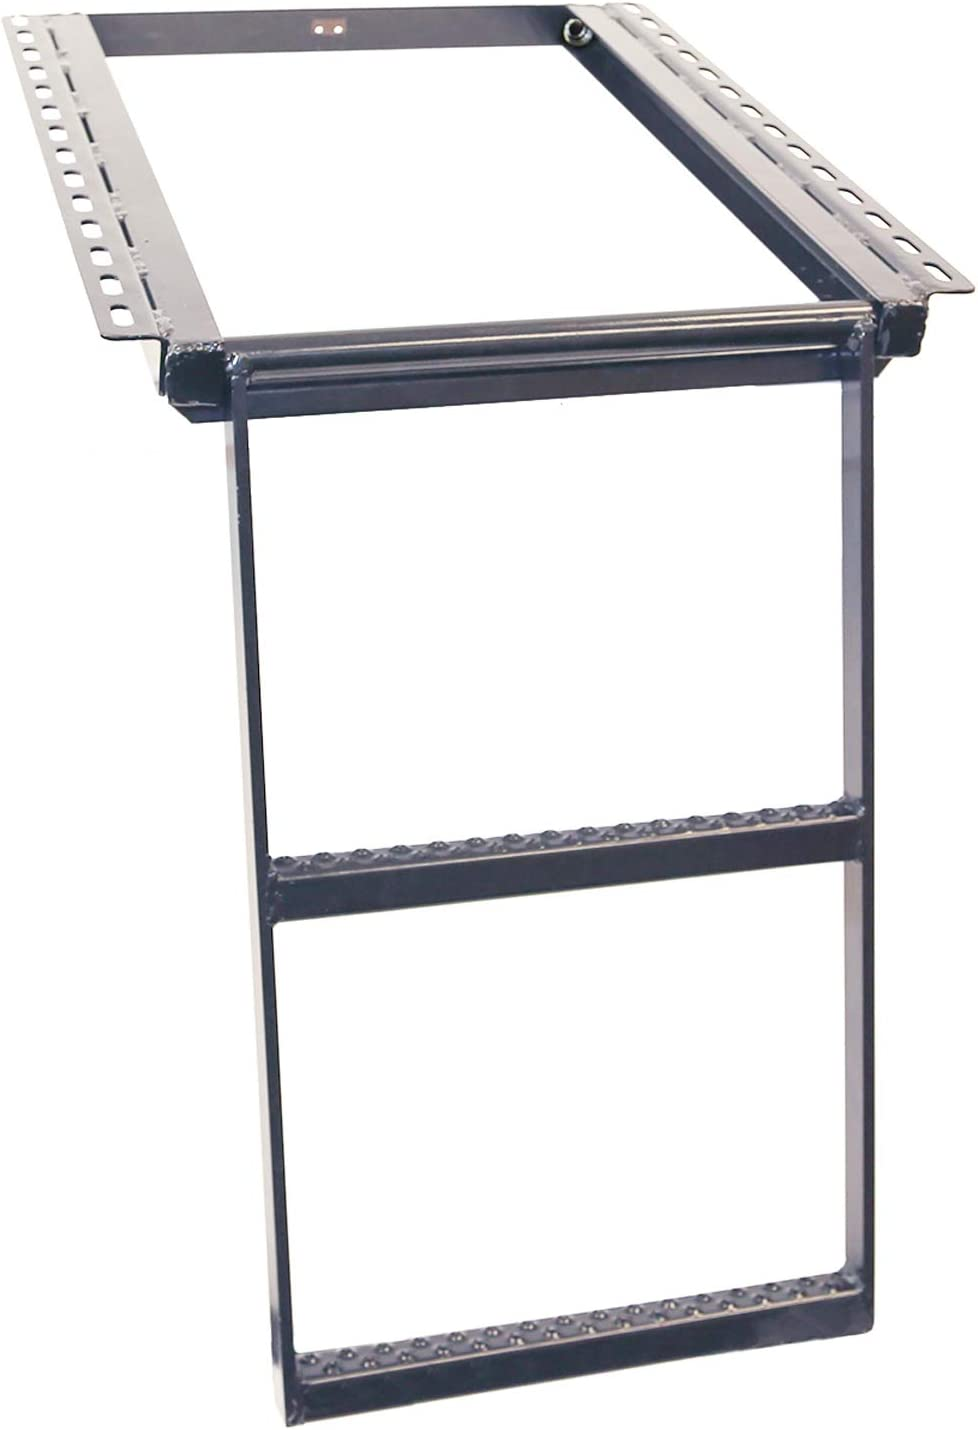 Buyers Products 5232001 Stainless Steel 2-Rung Retractable Truck Step